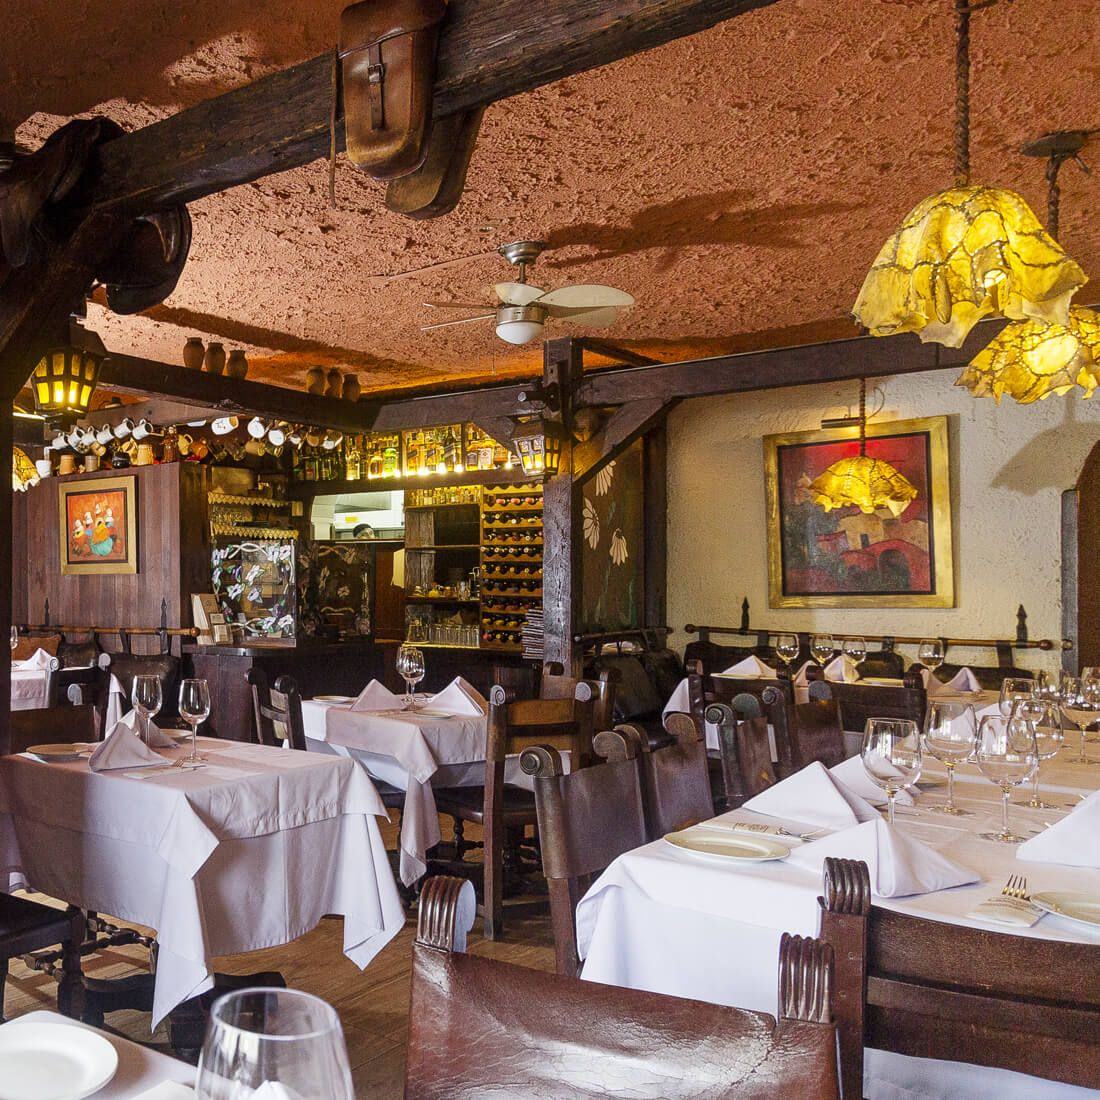 DON VITO Restaurant - and Peruvian Food ITALIAN - MIRAFLORES - MESA 24/7 Guide | LIMA - Peru